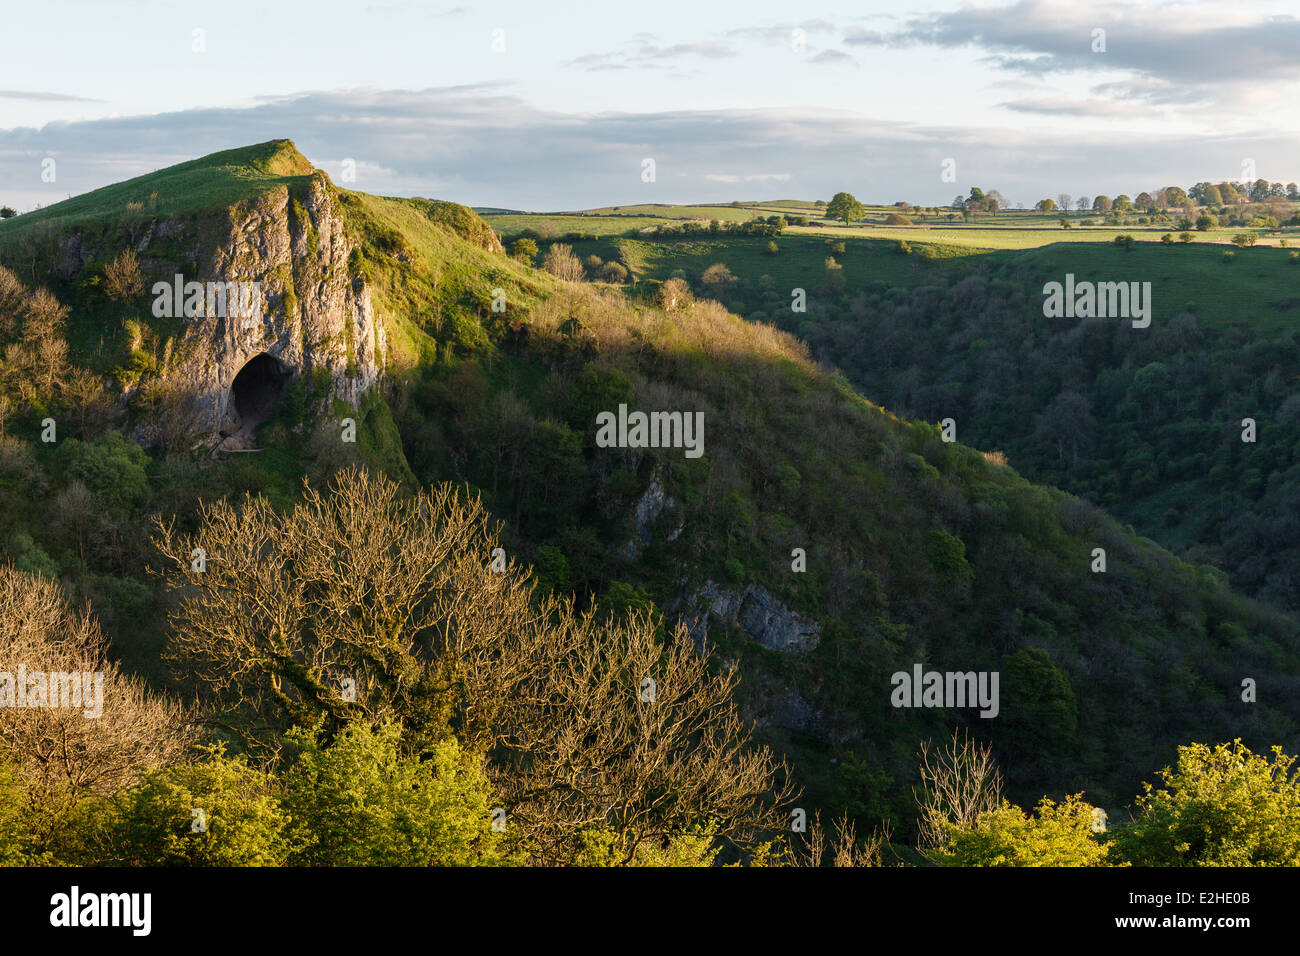 Thor's Cave, Manifold Valley, Peak District National Park, Staffordshire Stock Photo